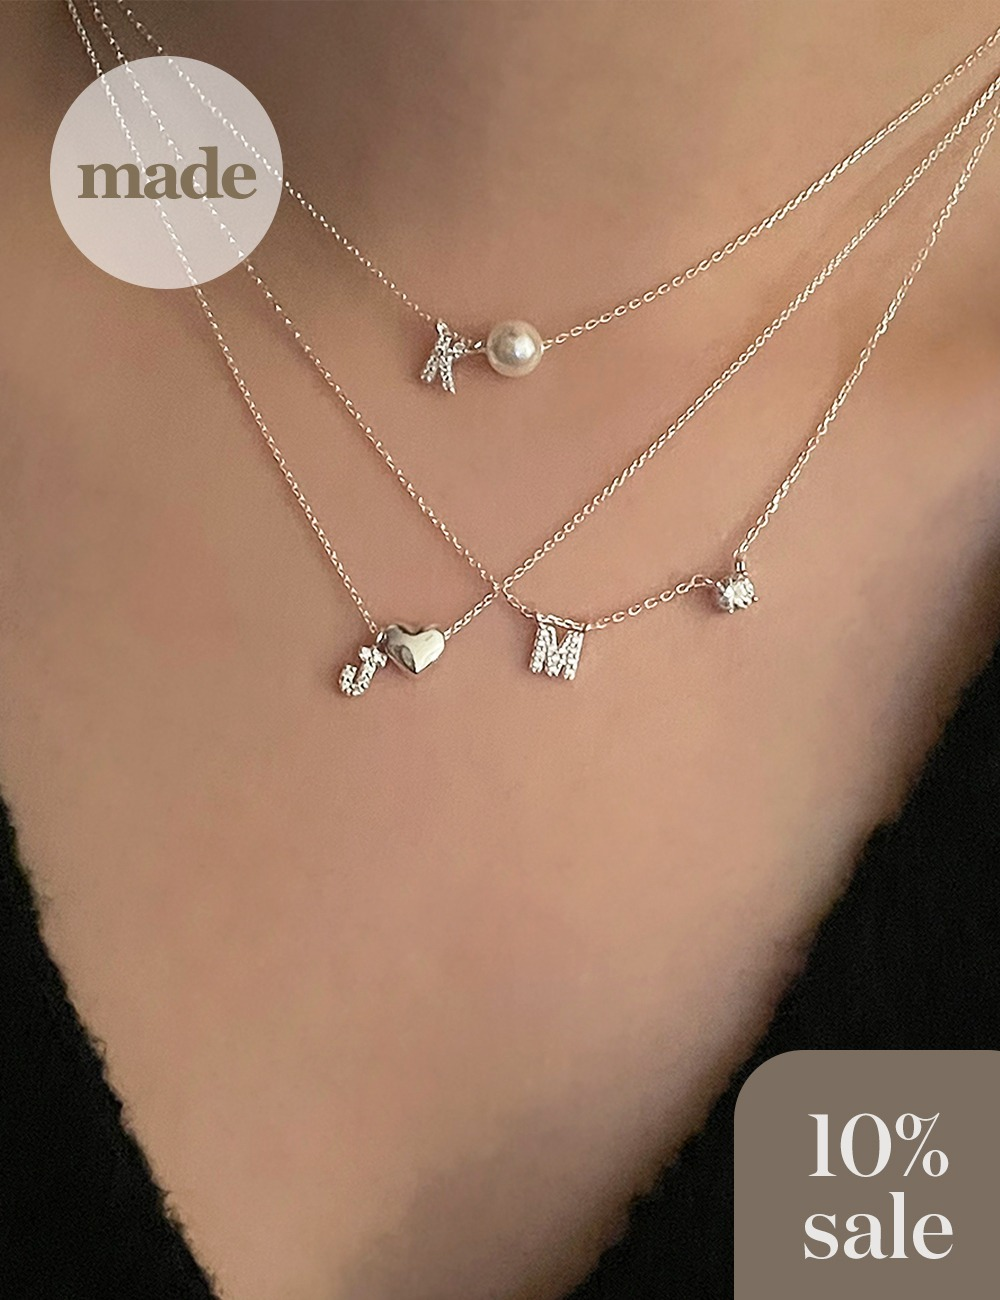 (silver 92.5) Cubic initial necklace / gleamme made